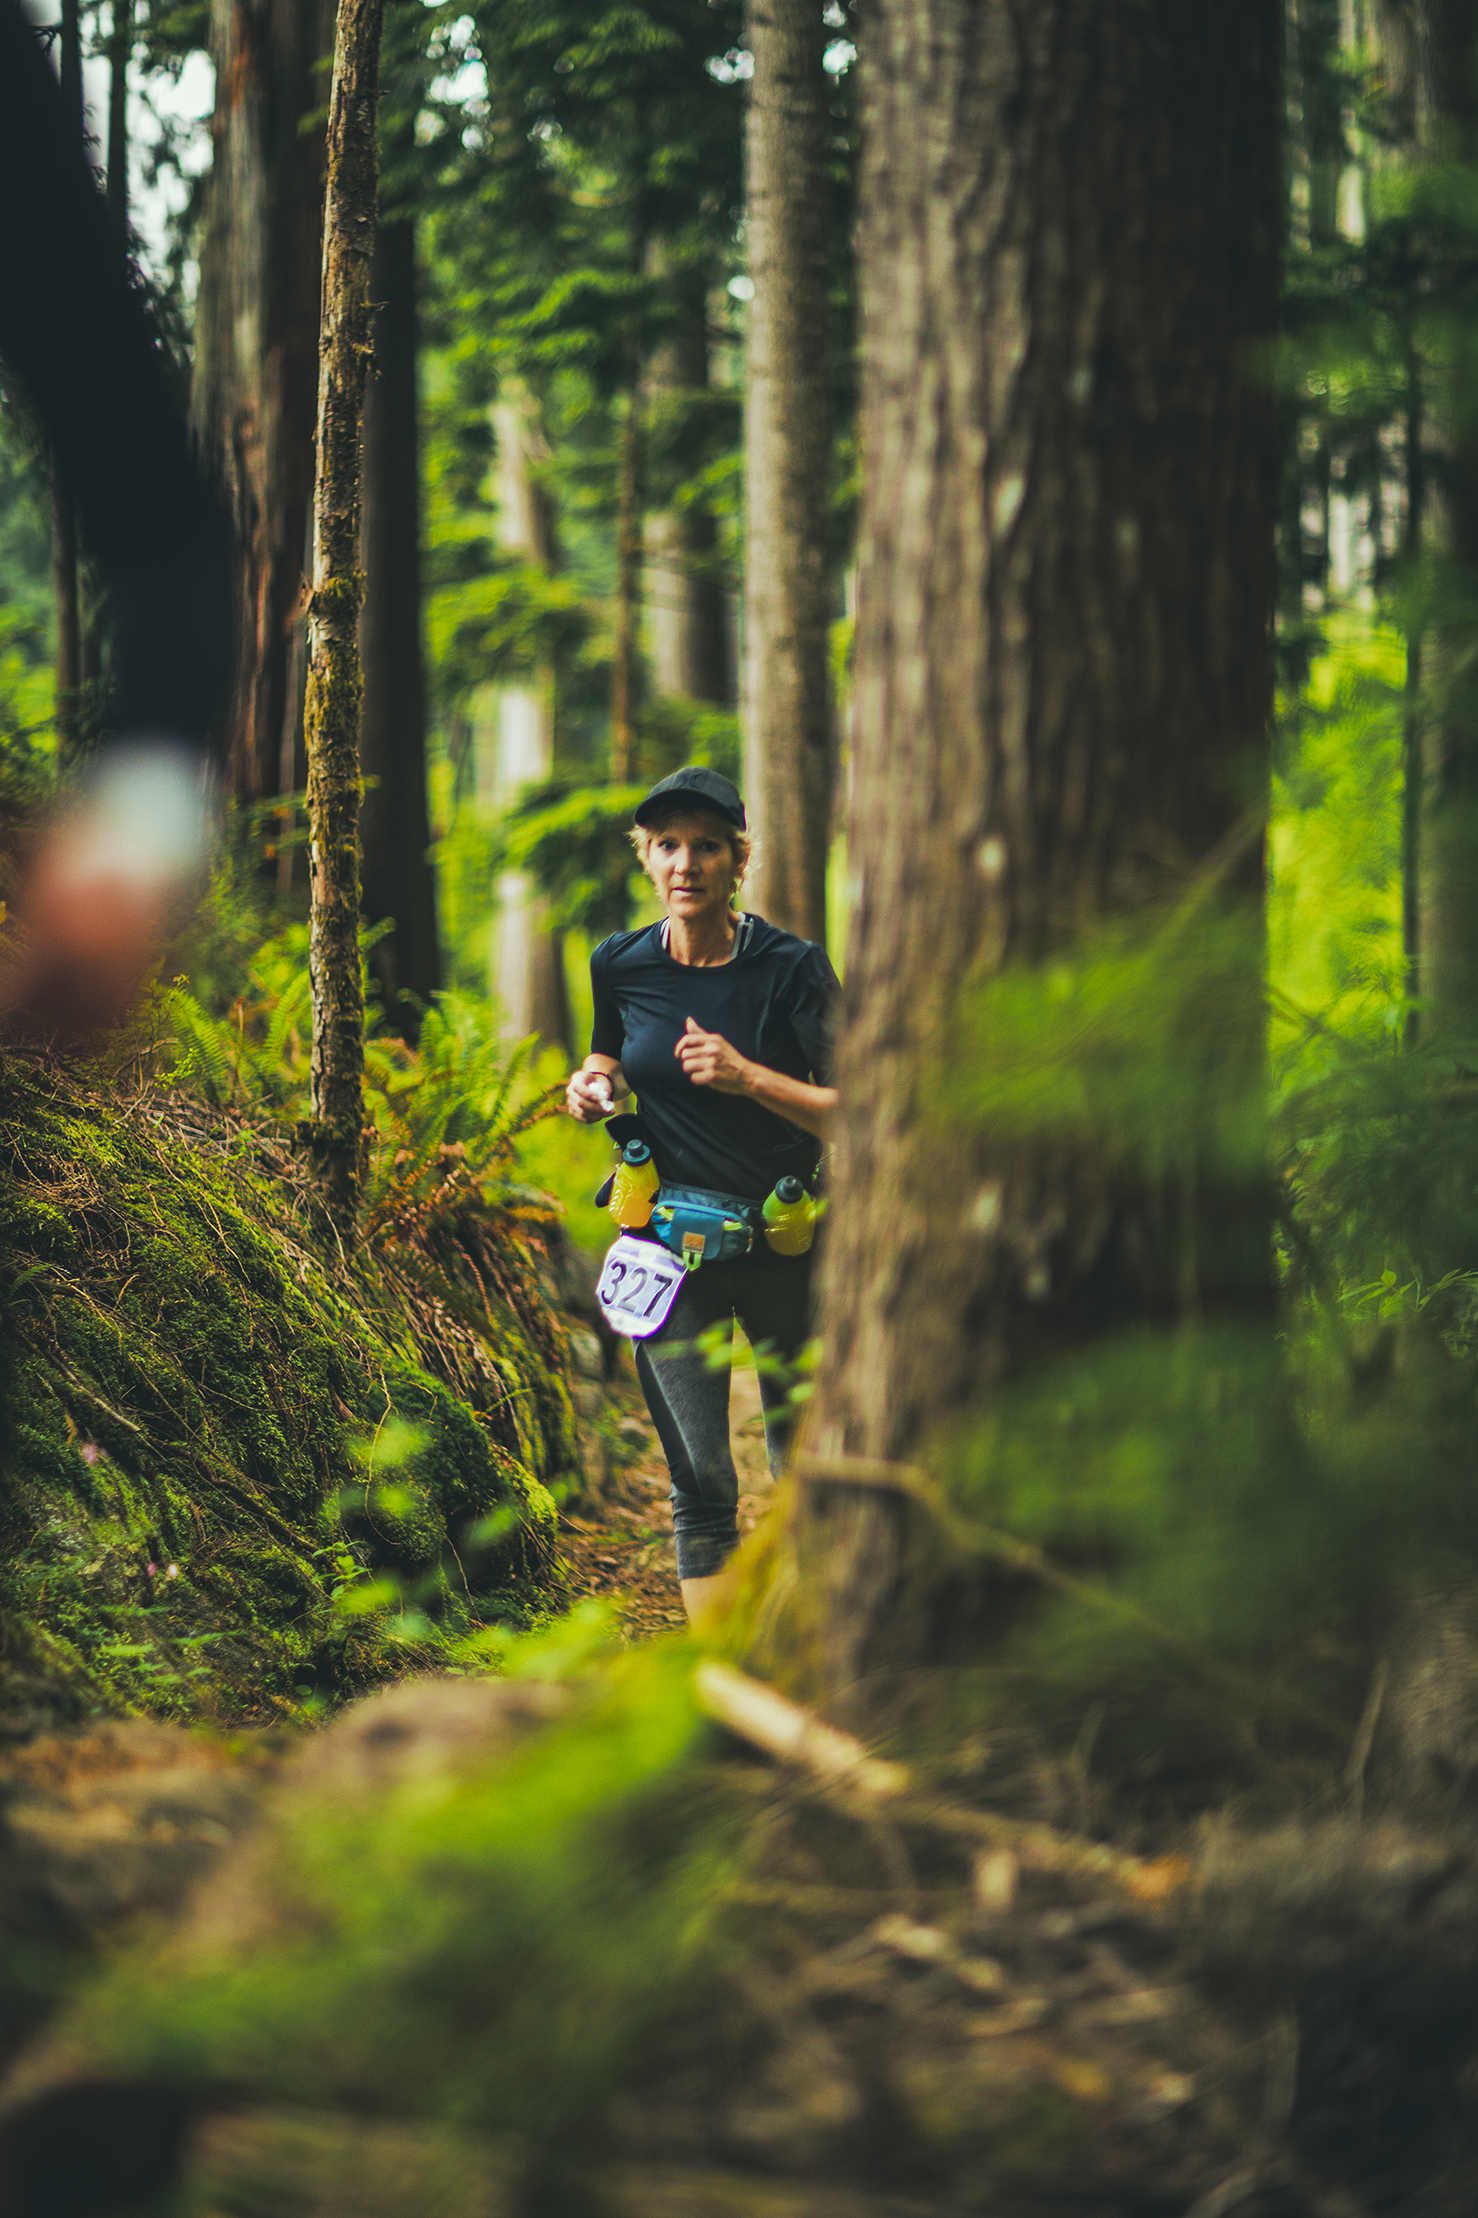 Fraser Valley Trail Races - Bear Mountain - IMG_1545 by Brice Ferre Studio - Vancouver Portrait Adventure and Athlete Photographer.jpg